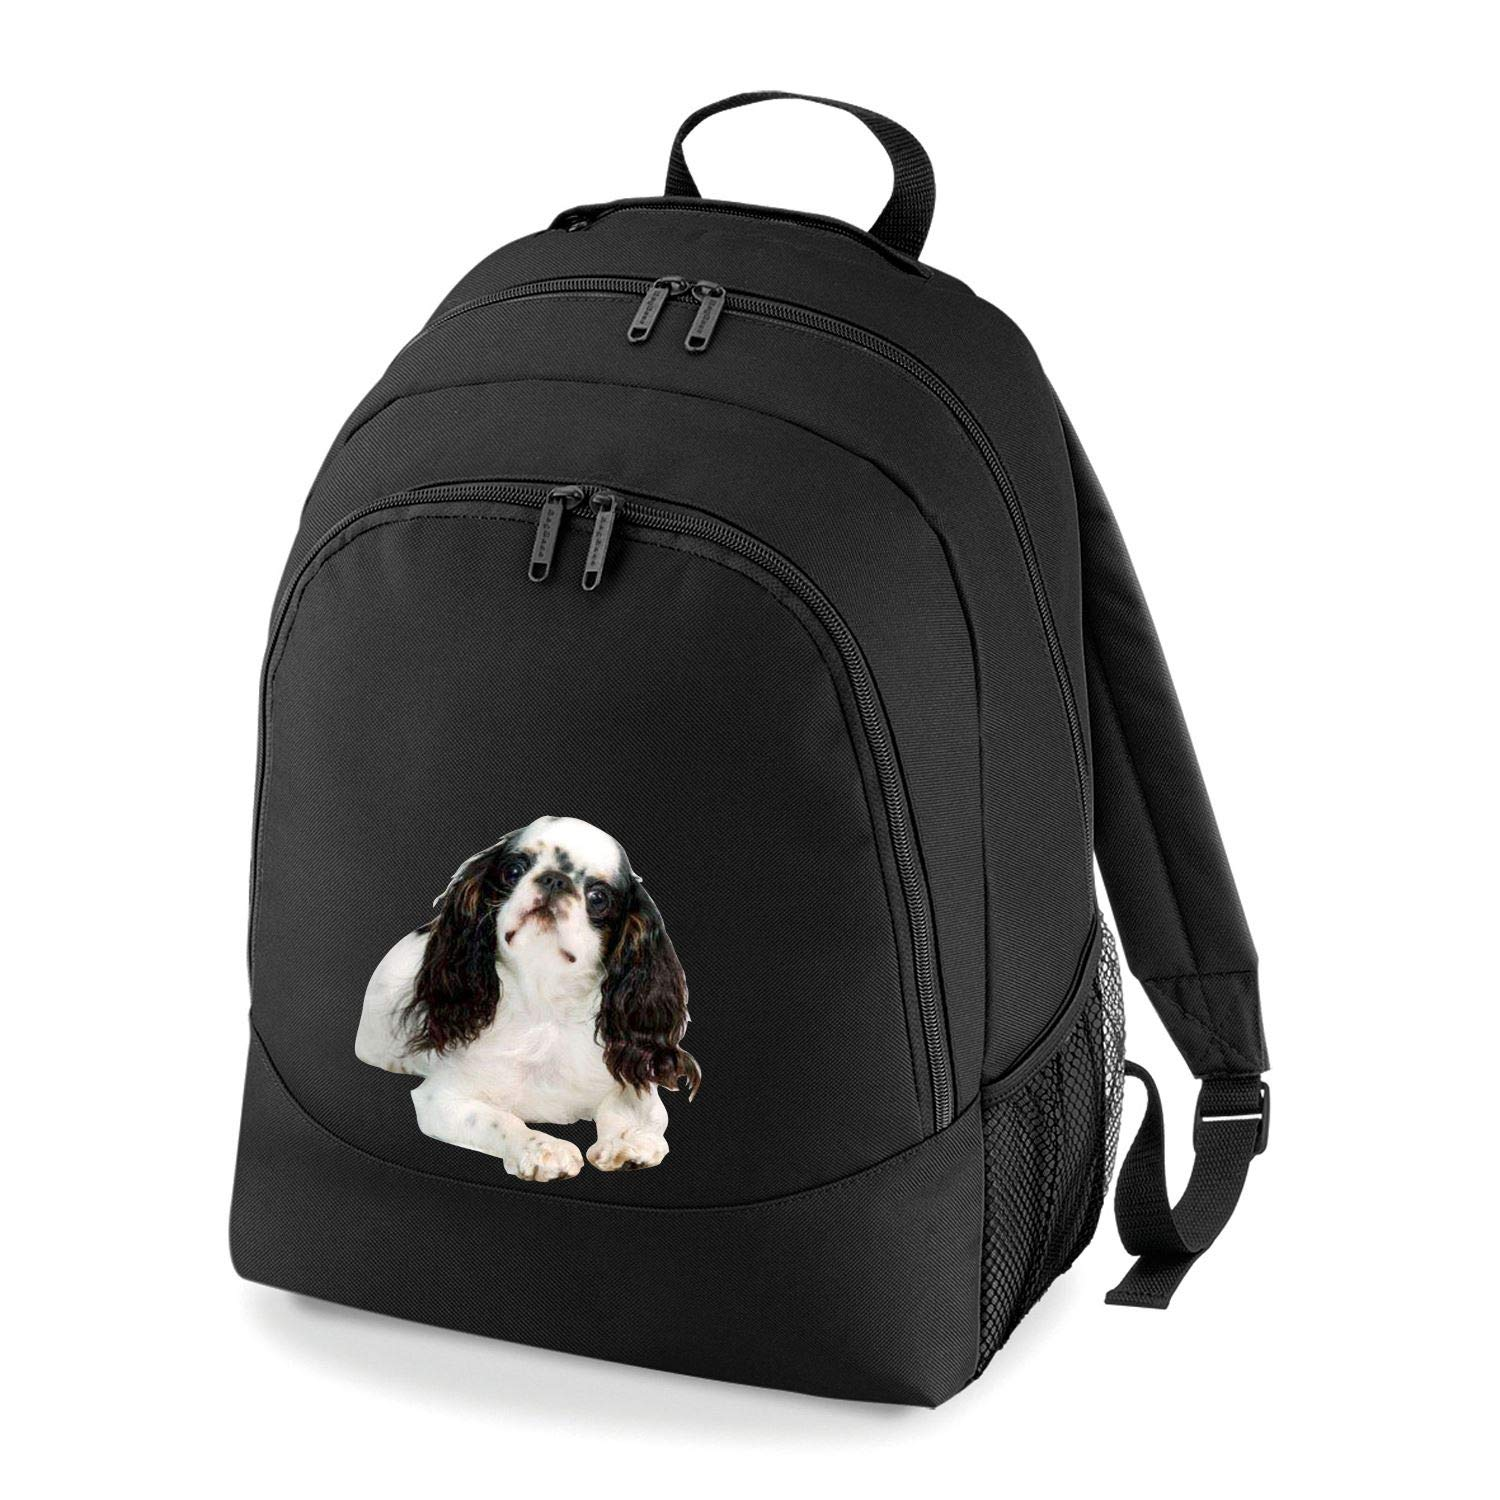 Taurus Clothing English Toy Spaniel Dog Personalised Embroidered Rucksack Black